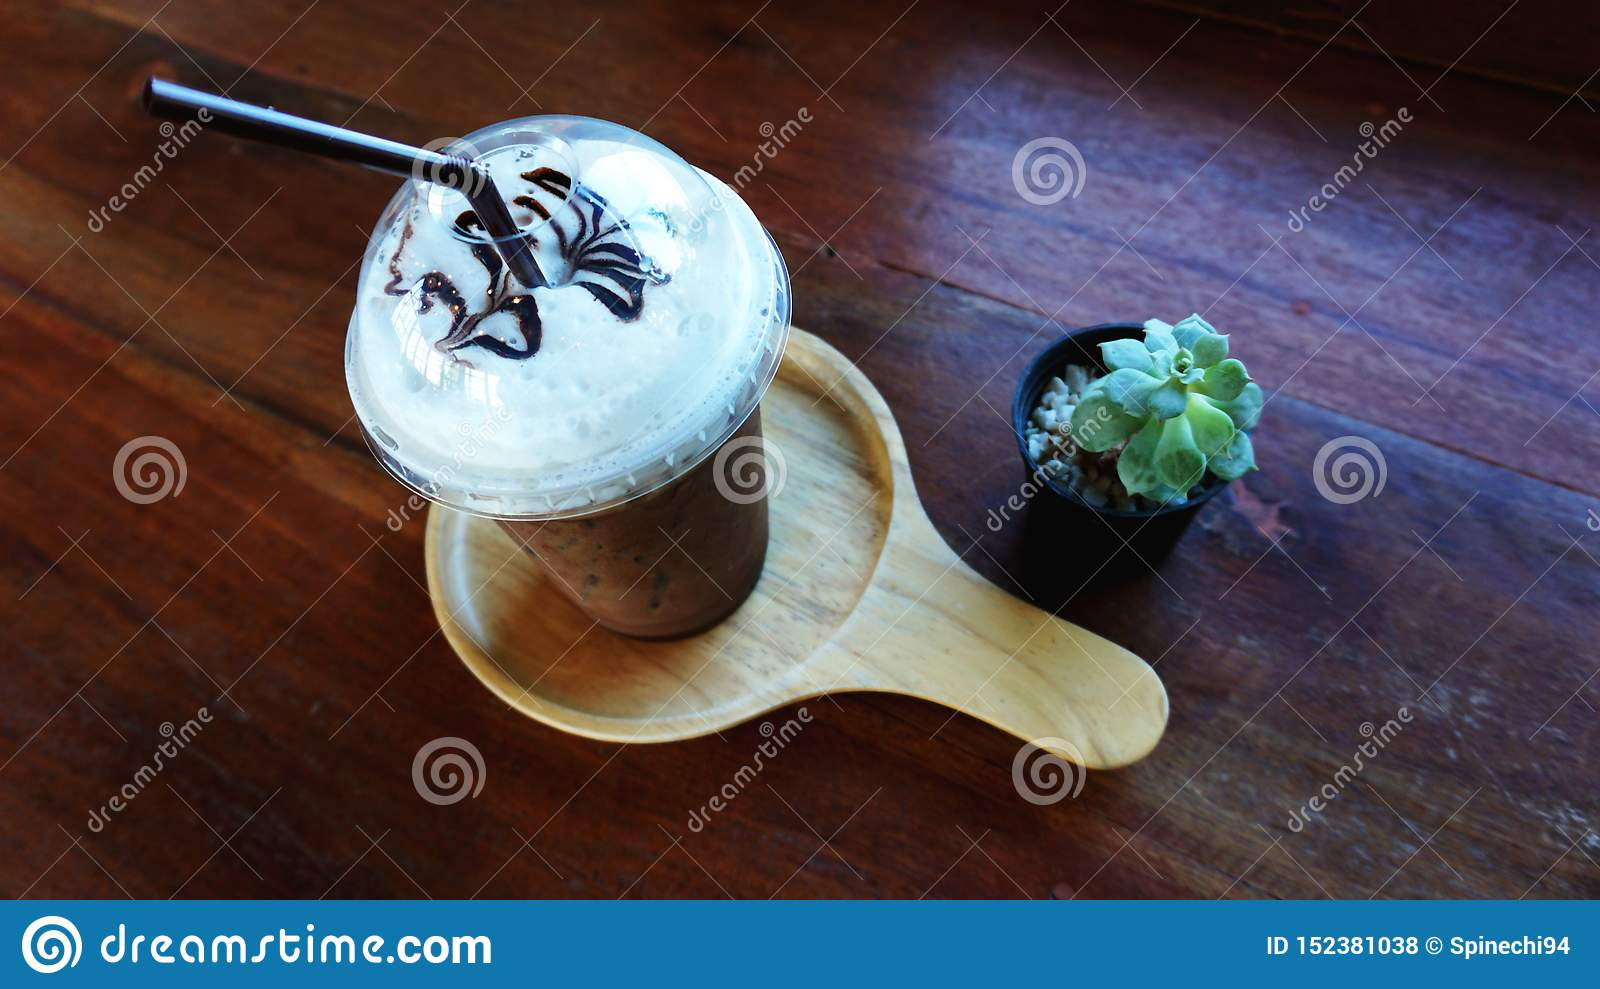 A cup of ice coffee with cactus